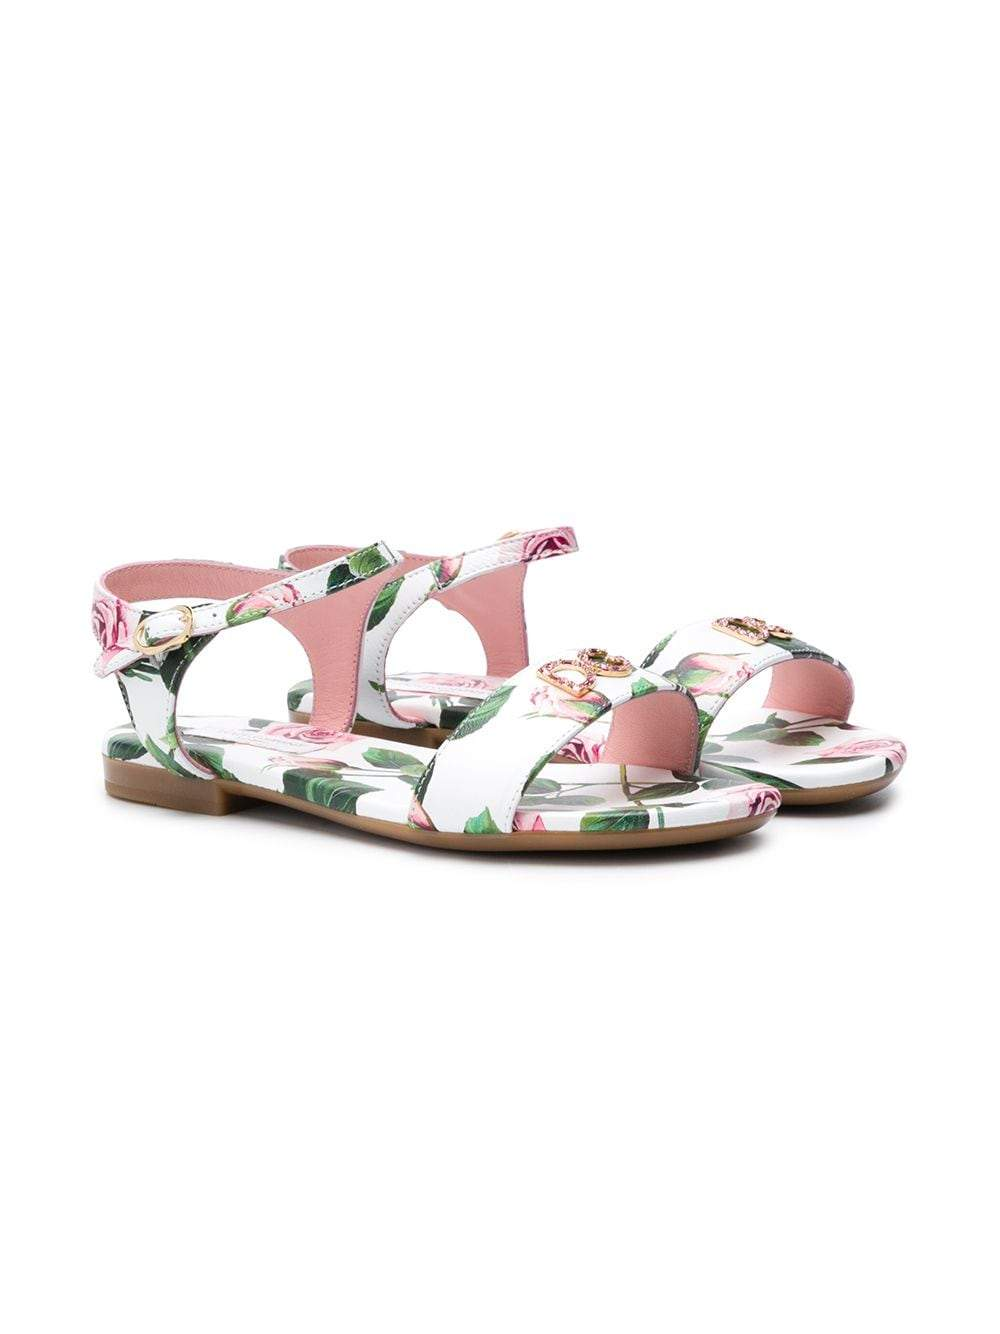 DOLCE & GABBANA KIDS red/pink sandals